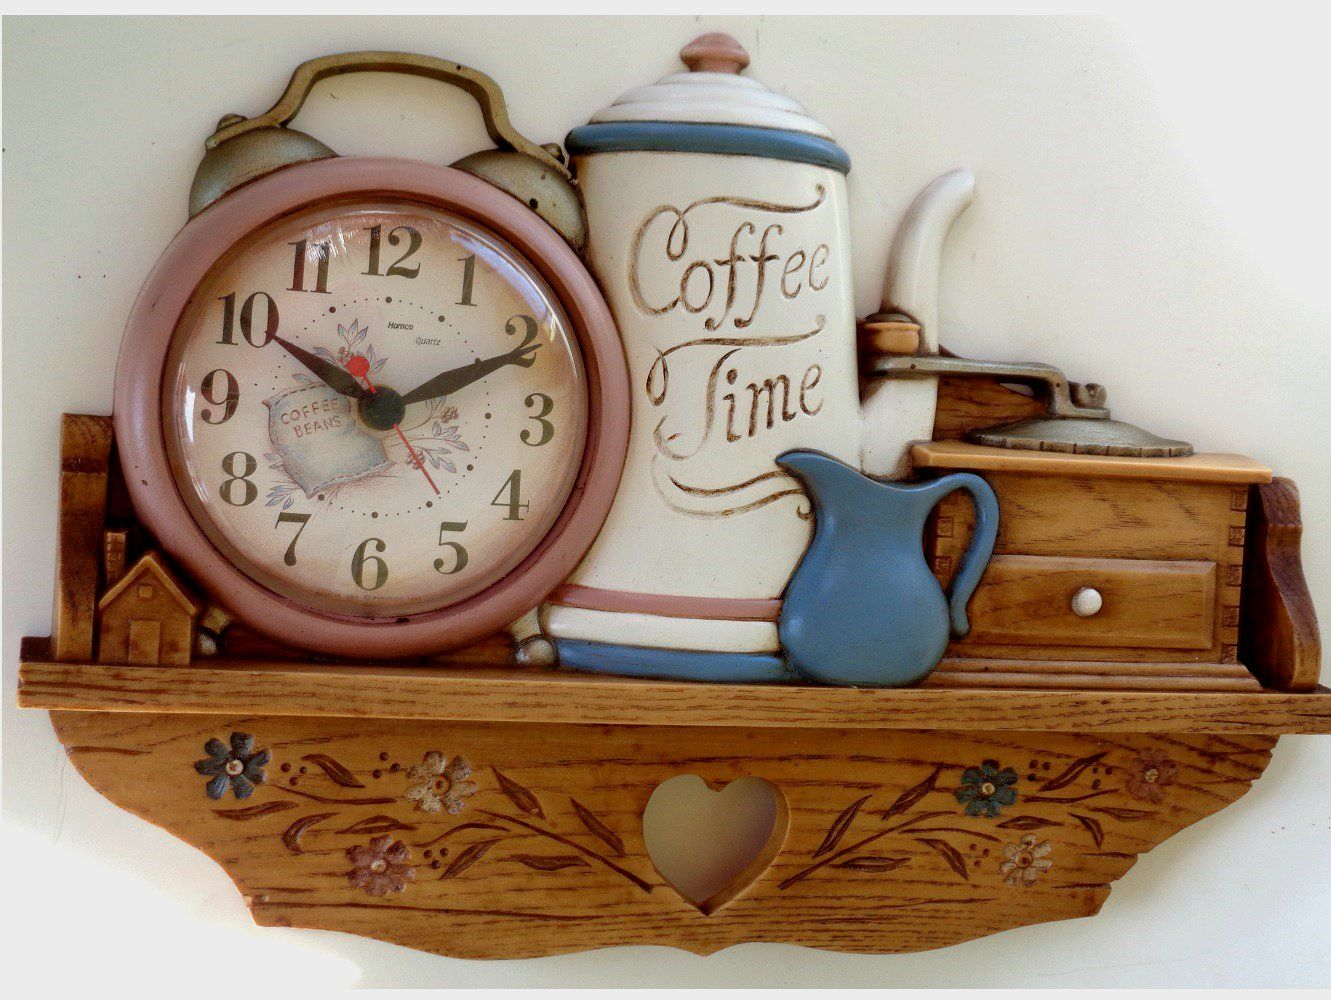 Coffee Pot Clock Vintage Kitchen Wall Decor Kitchen Wall Decor Kitchen Decor Themes Coffee Vintage Kitchen